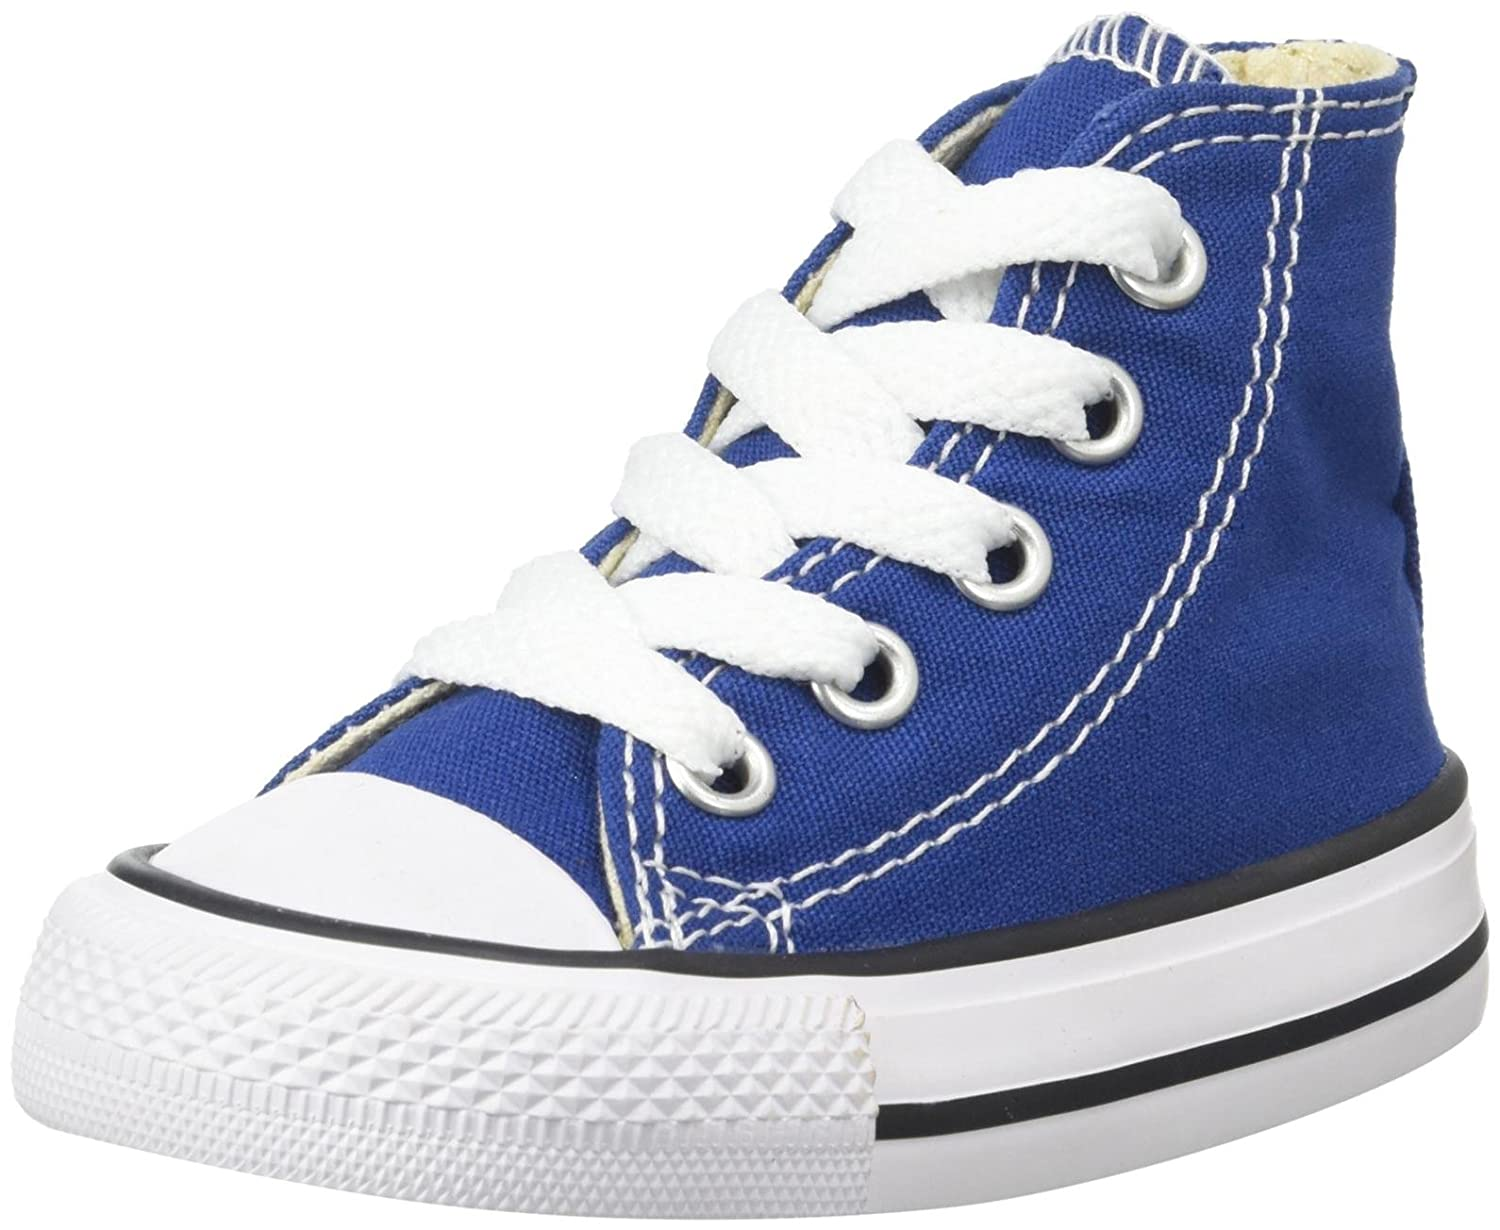 Converse mixte Ctas Core mode Hi, Baskets mode B076YYTD23 mixte adulte af38761 - fast-weightloss-diet.space